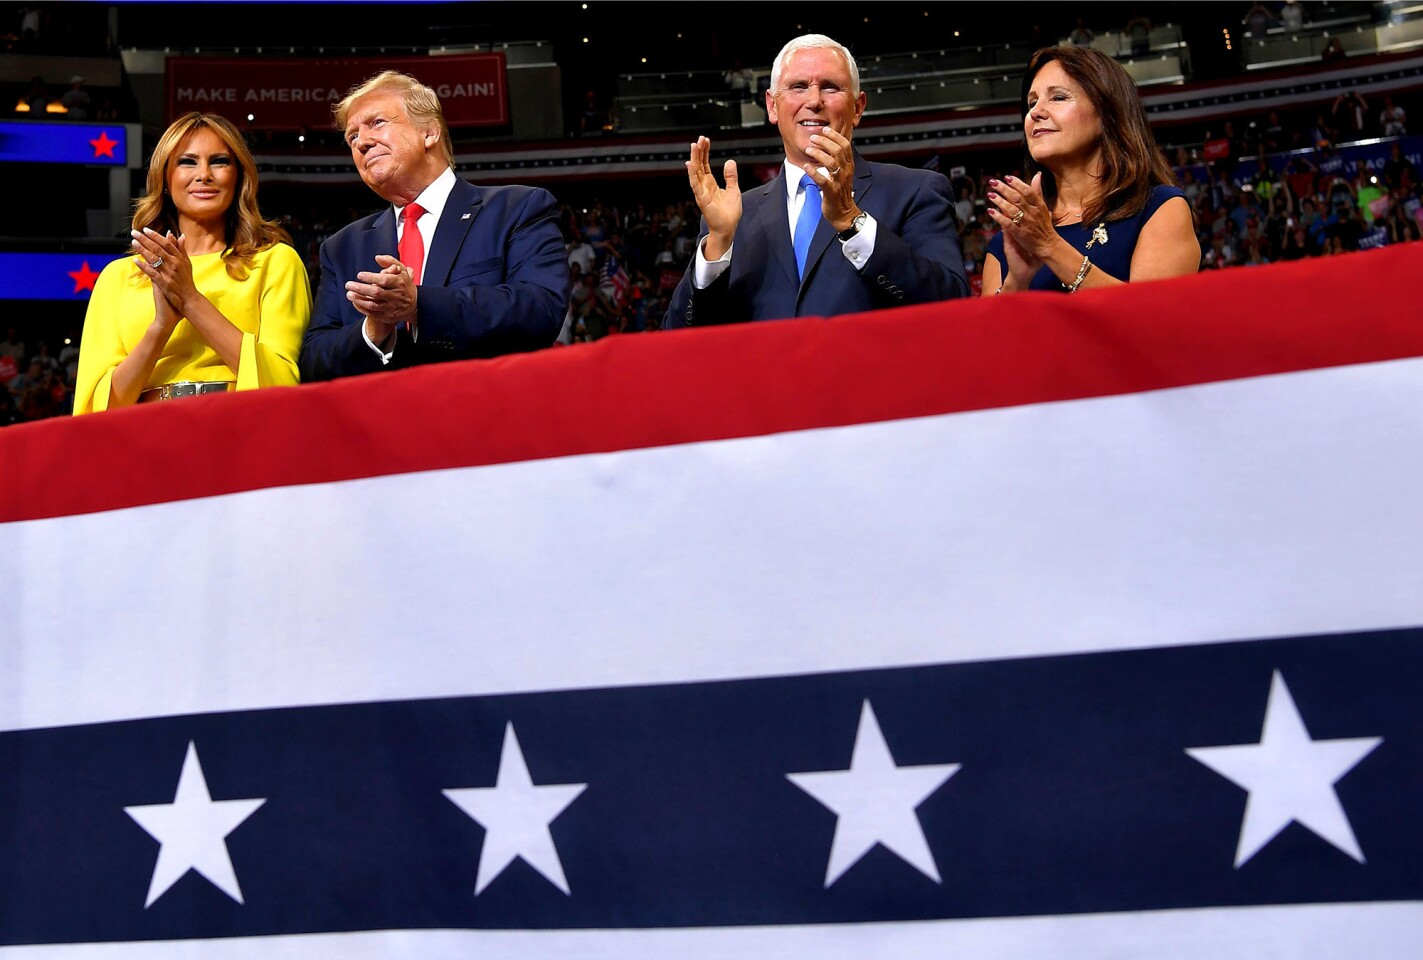 First Lady Melania Trump, from left, President Trump, Vice President Mike Pence and Karen Pence at the launch of the Trump 2020 campaign at the Amway Center in Orlando, Fla., on Tuesday.